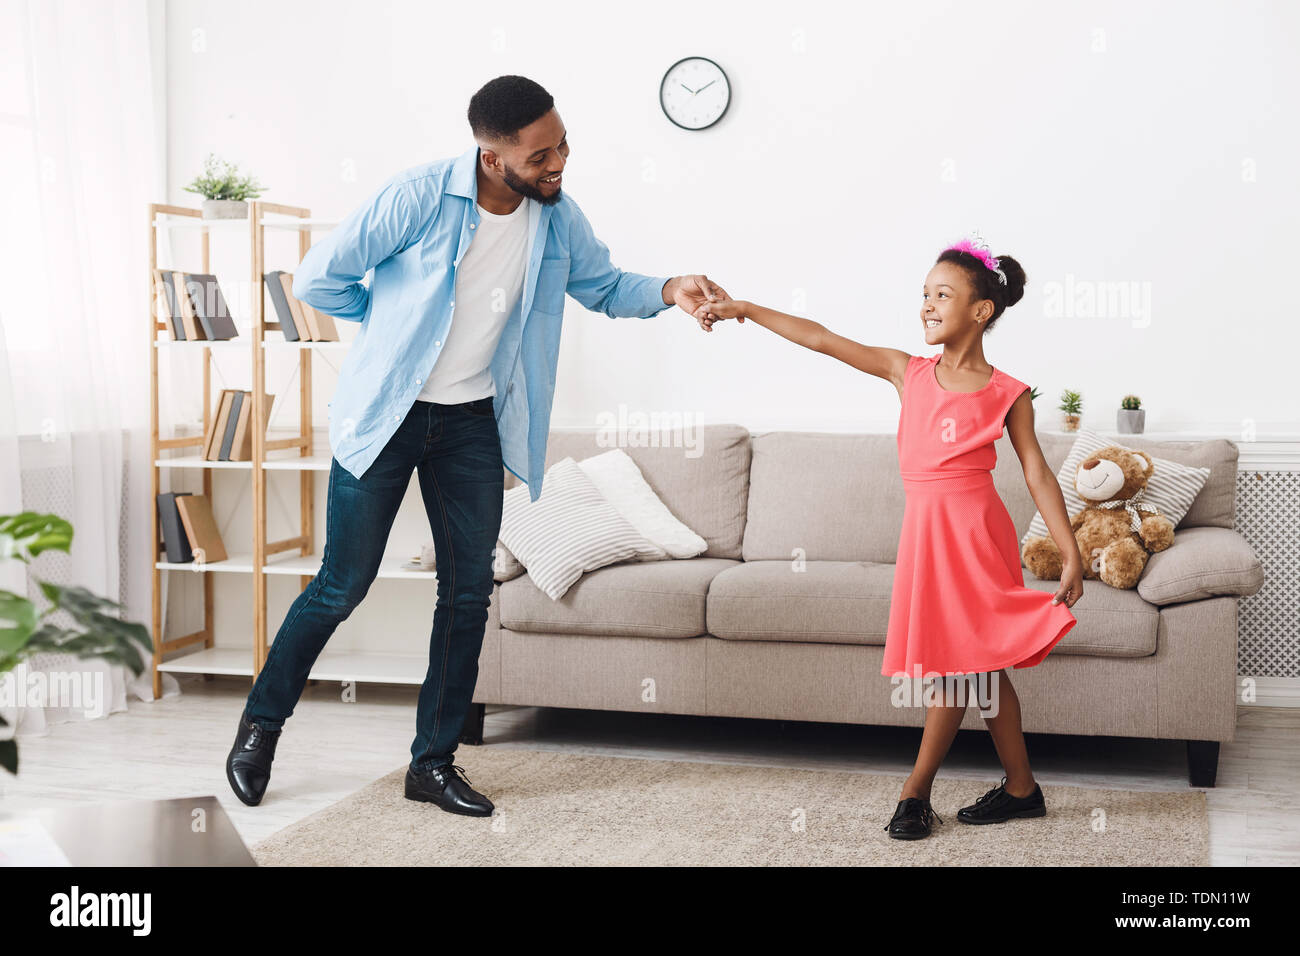 My Princess. Cute Girl Dancing With Father At Home - Stock Image